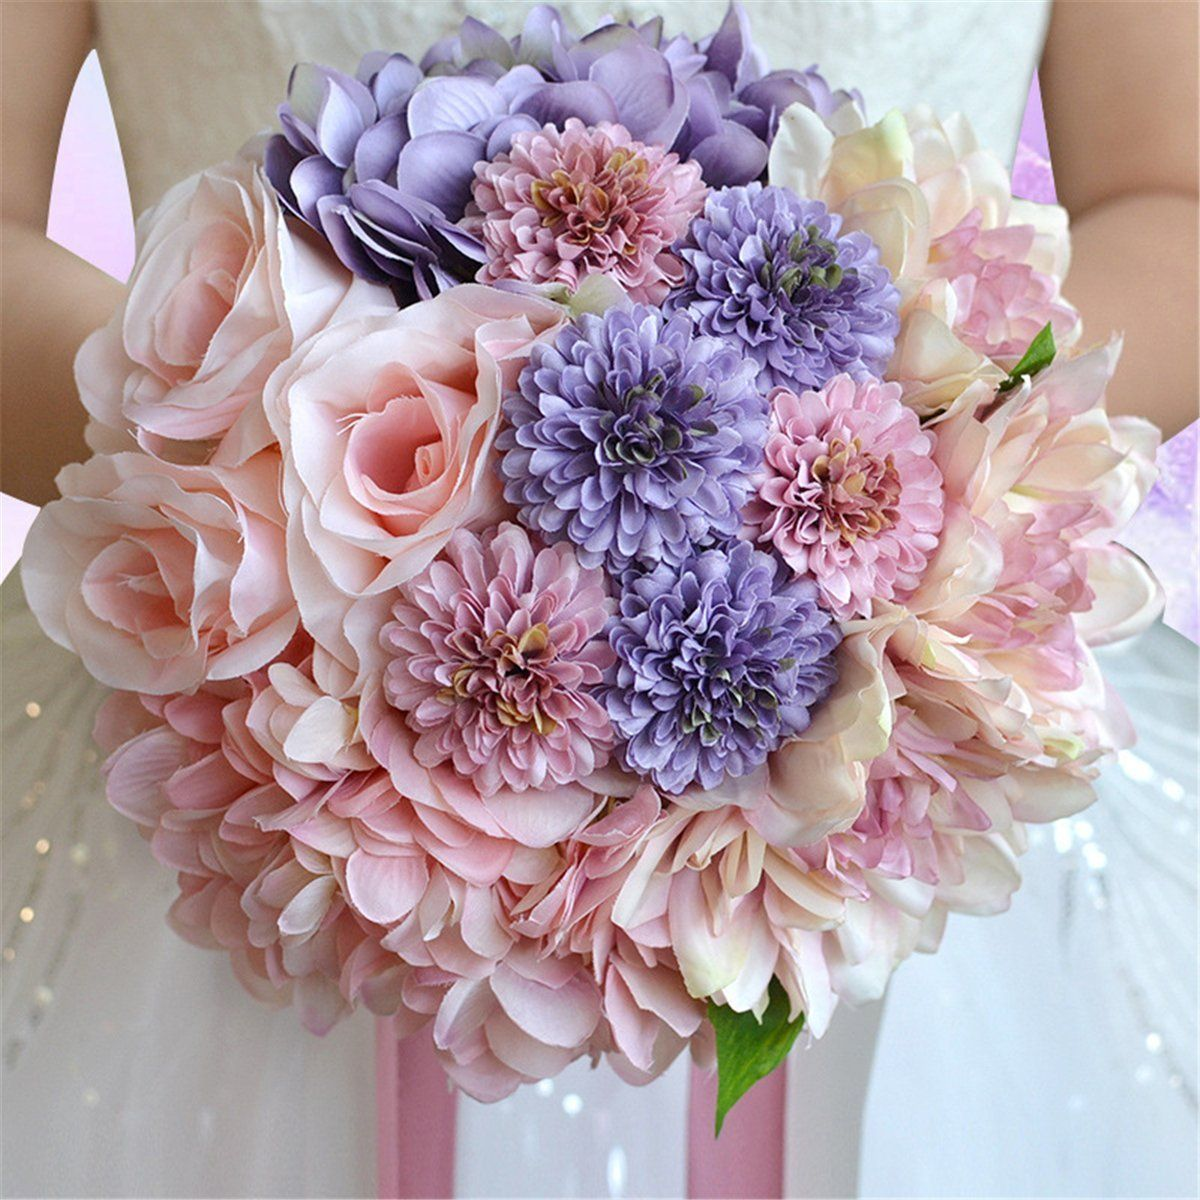 Wedding bouquets without roses  Zebratown uu Chrysanthemum Bridal Bridesmaid Bouquets Artificial